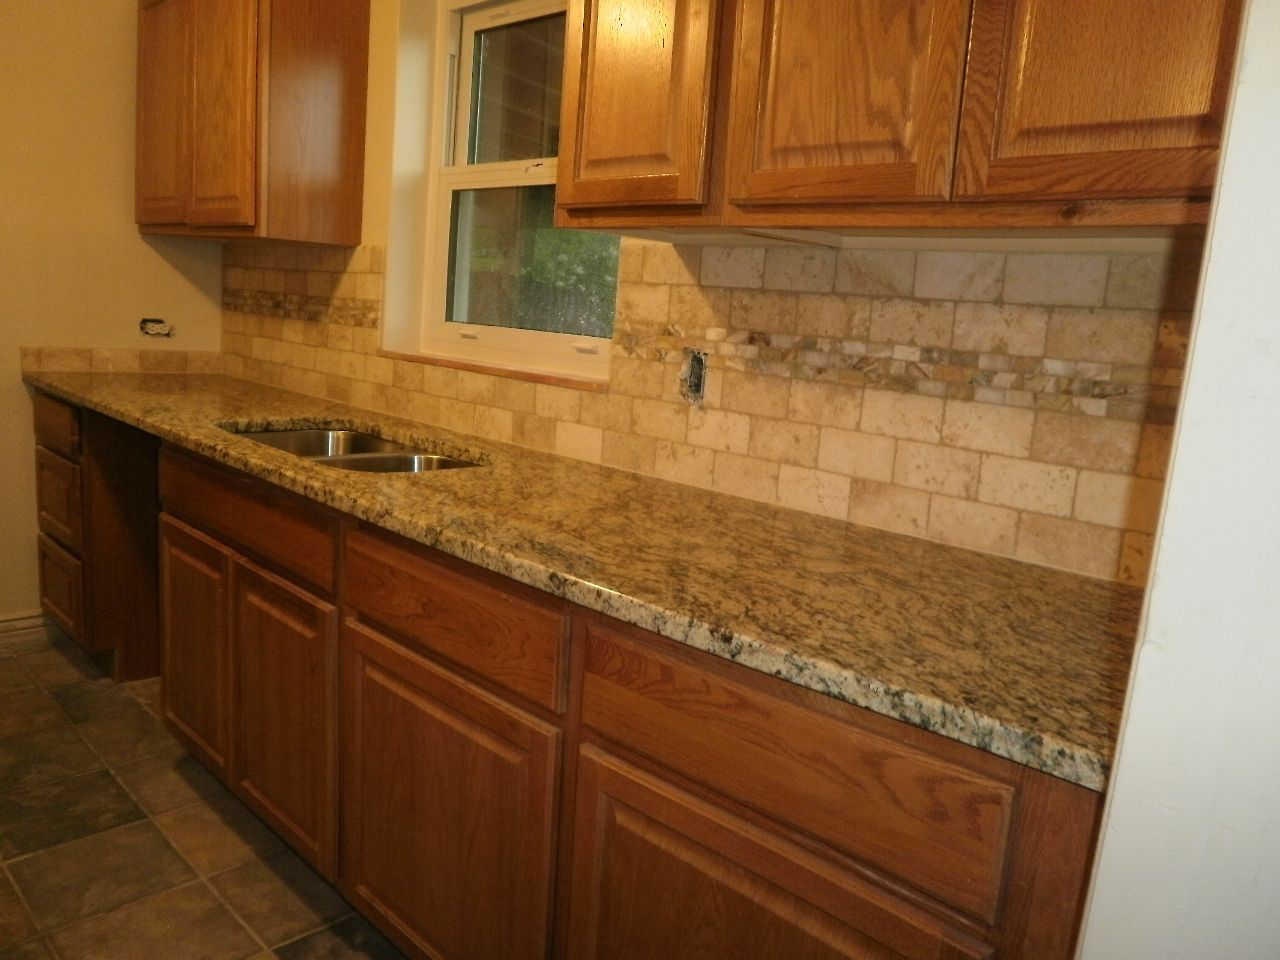 Kitchen Tile Countertop Kitchen Backsplash Ideas Granite Countertops Backsplash Ideas